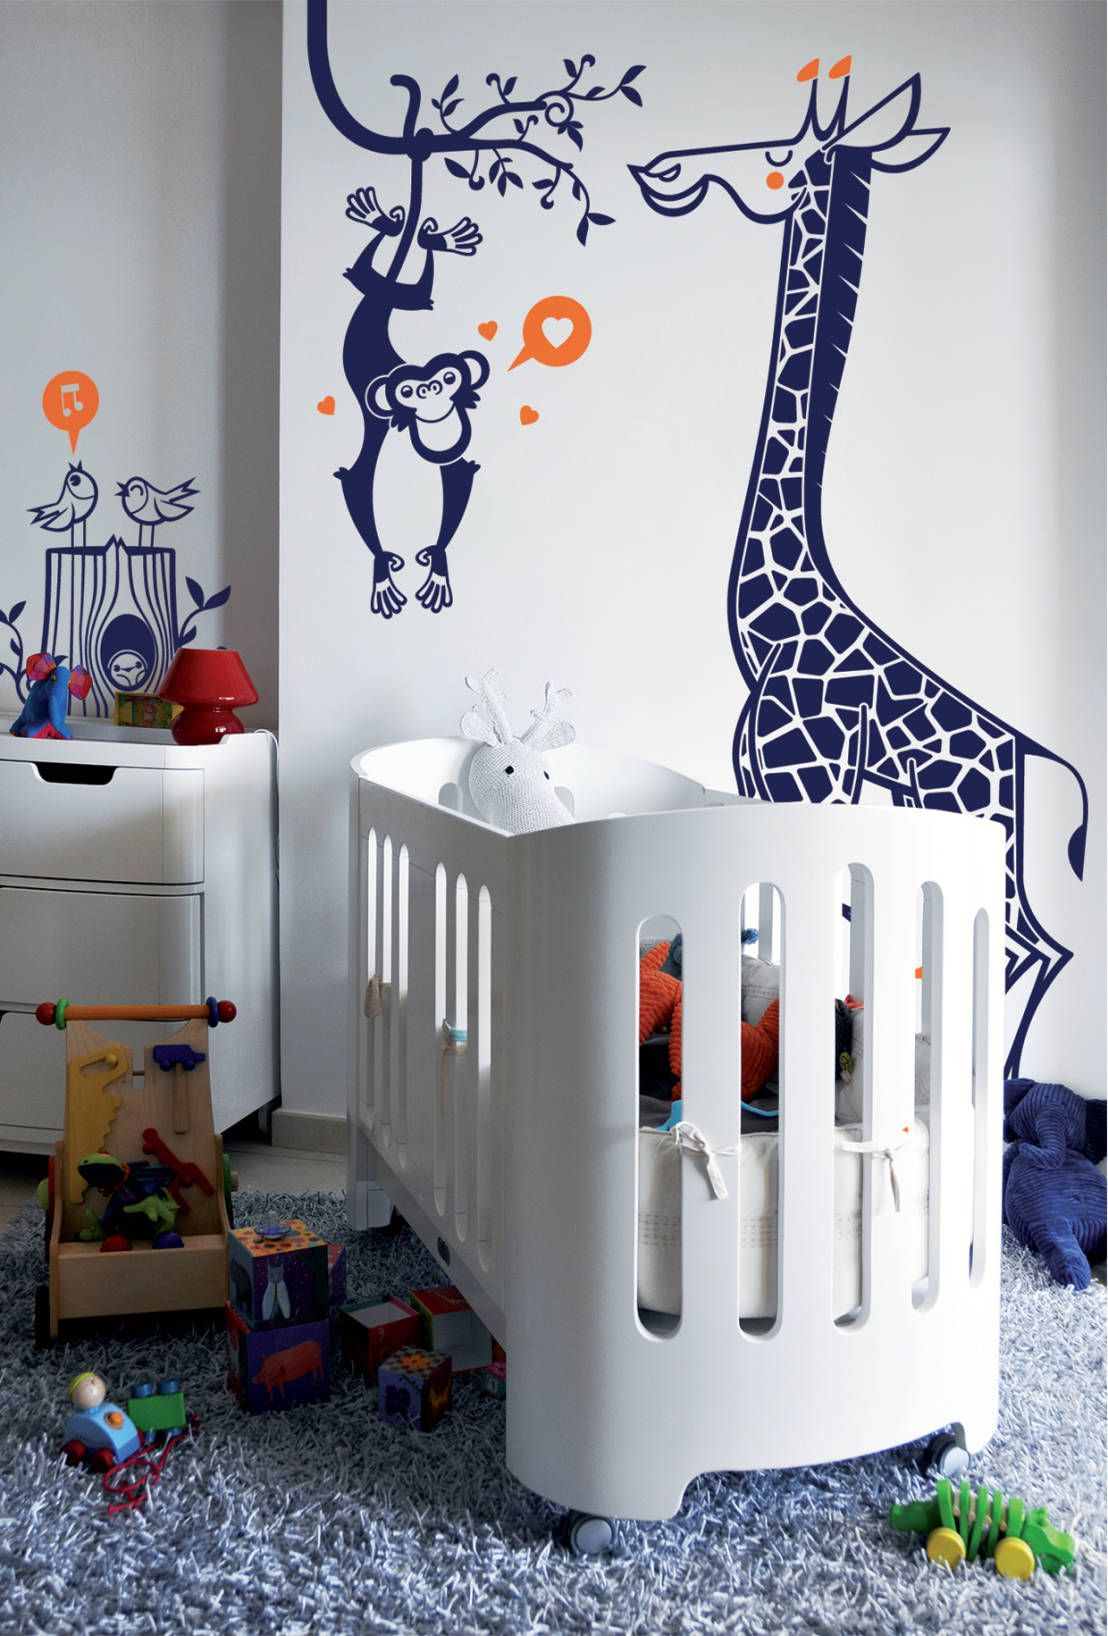 Deco Chambre Savane Stickers Enfants Kit Savane Par E Glue Stickers Muraux